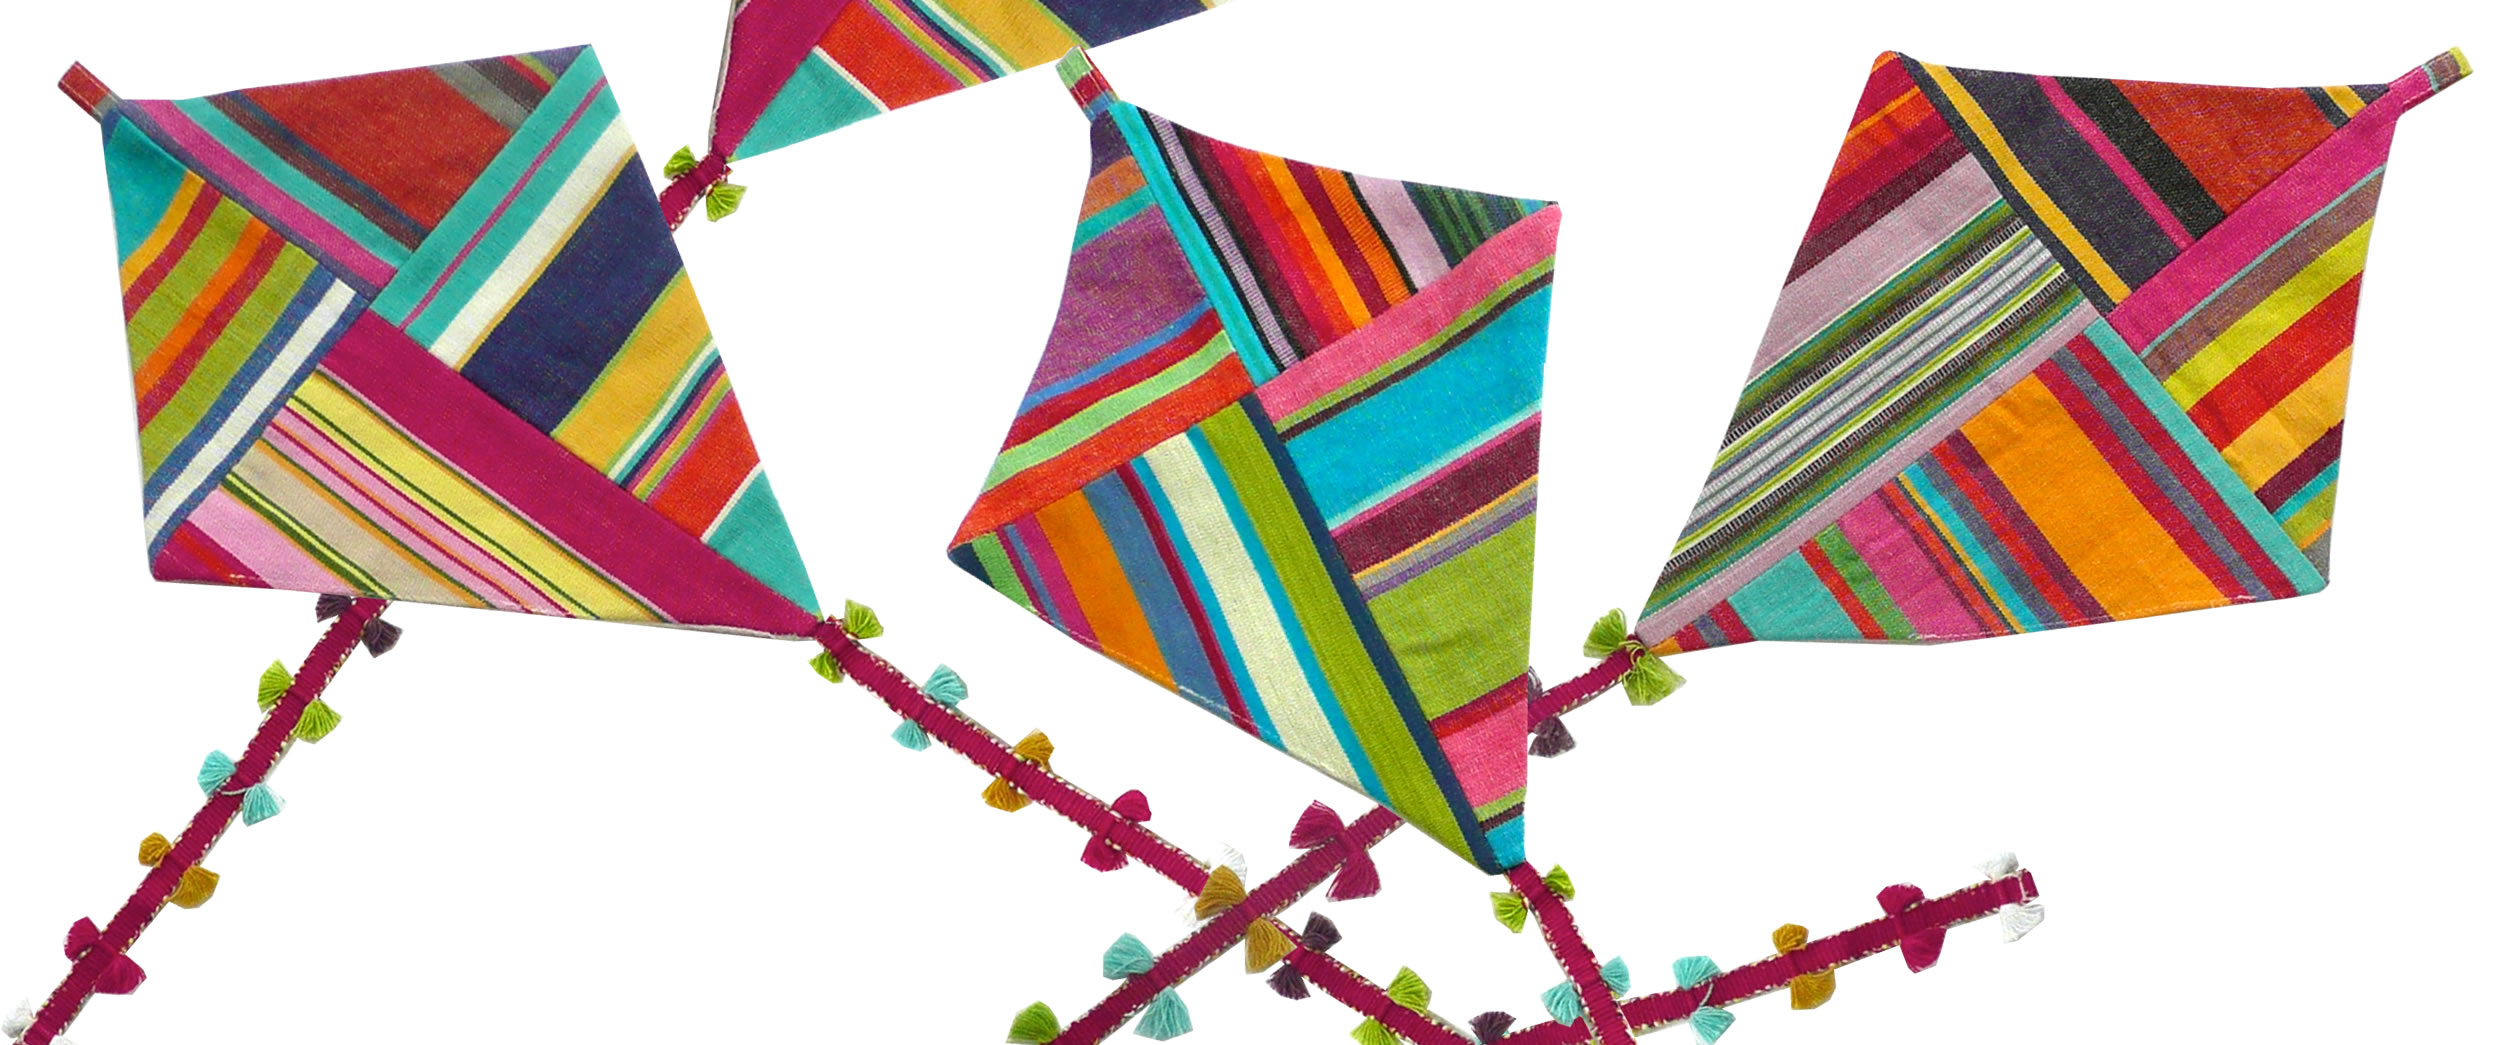 Kids Room Accessories | Kite Hangers | Kite Bunting